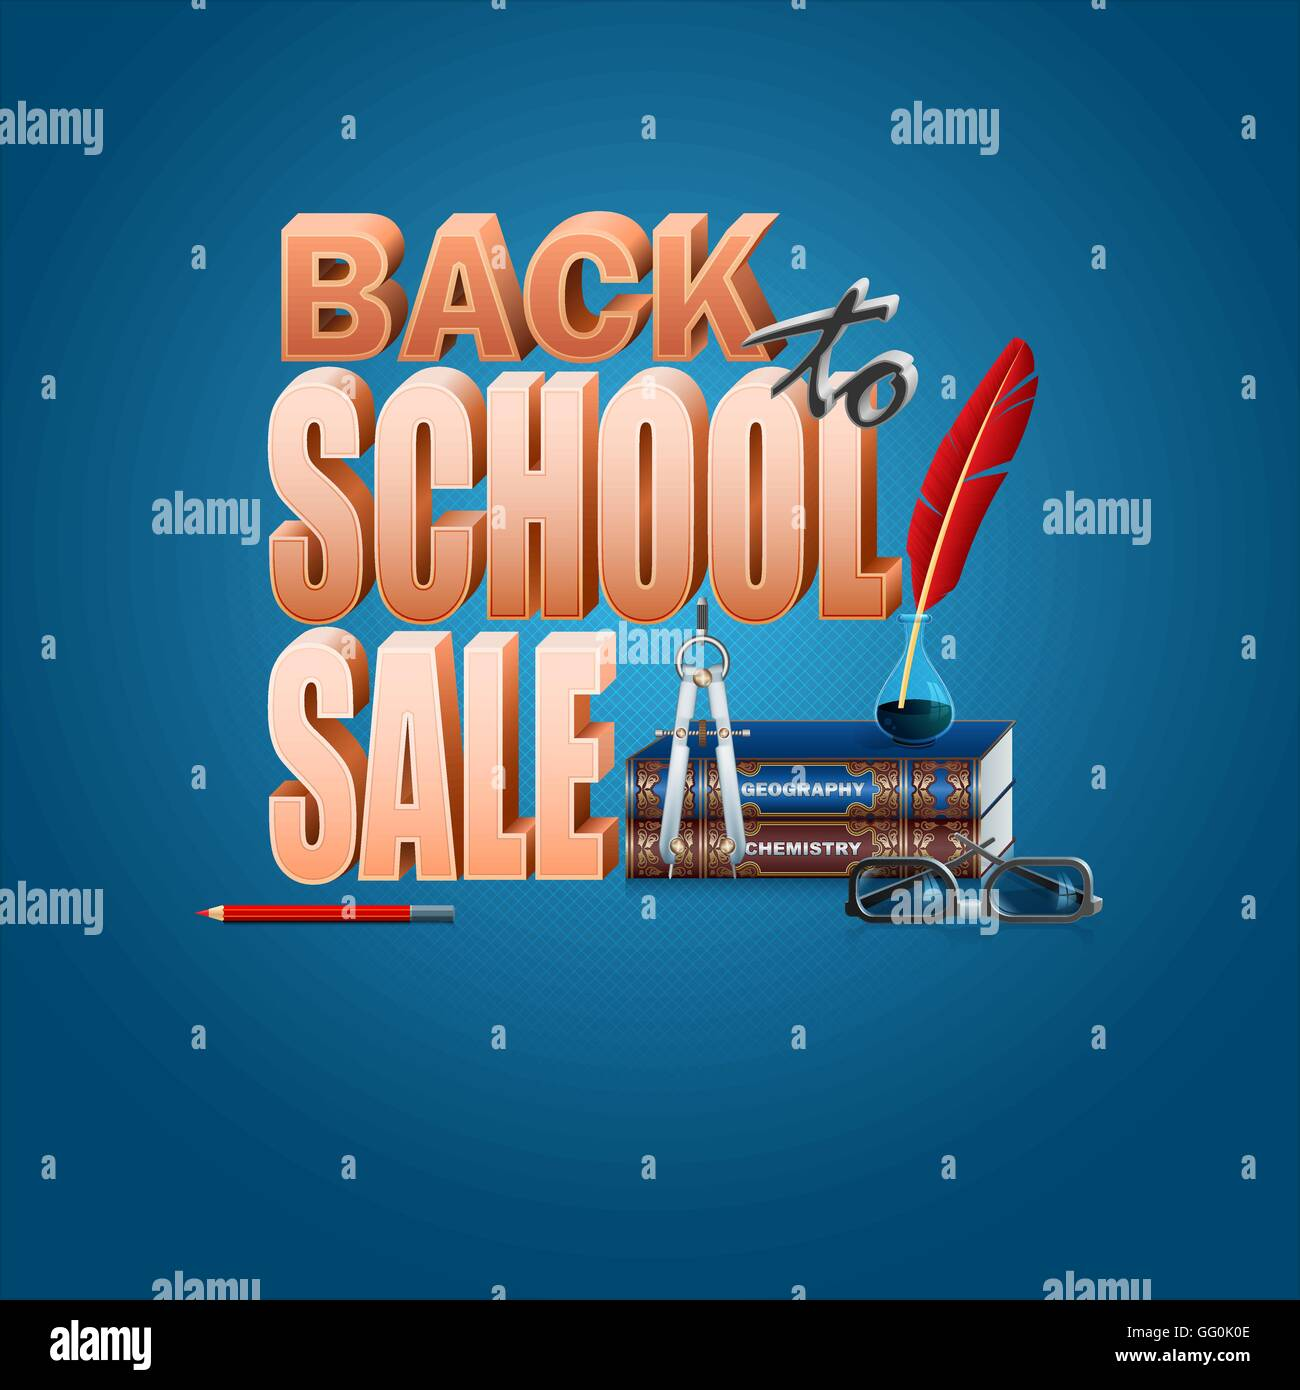 Abstract vector, design background with Back to school, commercial event Stock Vector